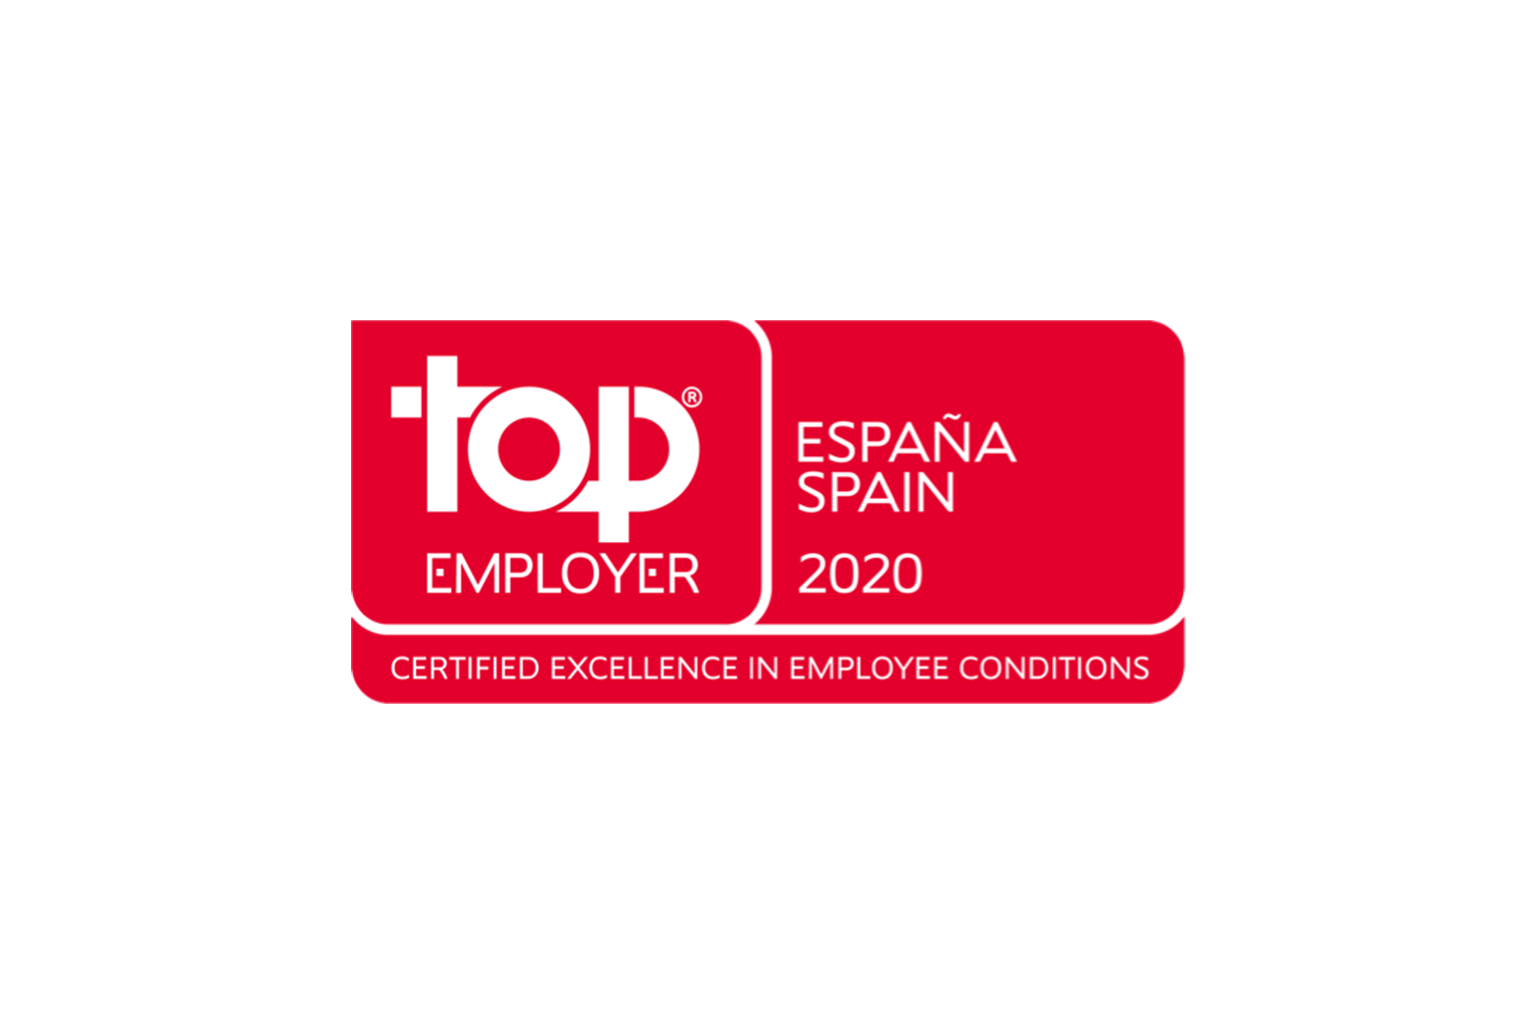 Top Employer Spain 2020